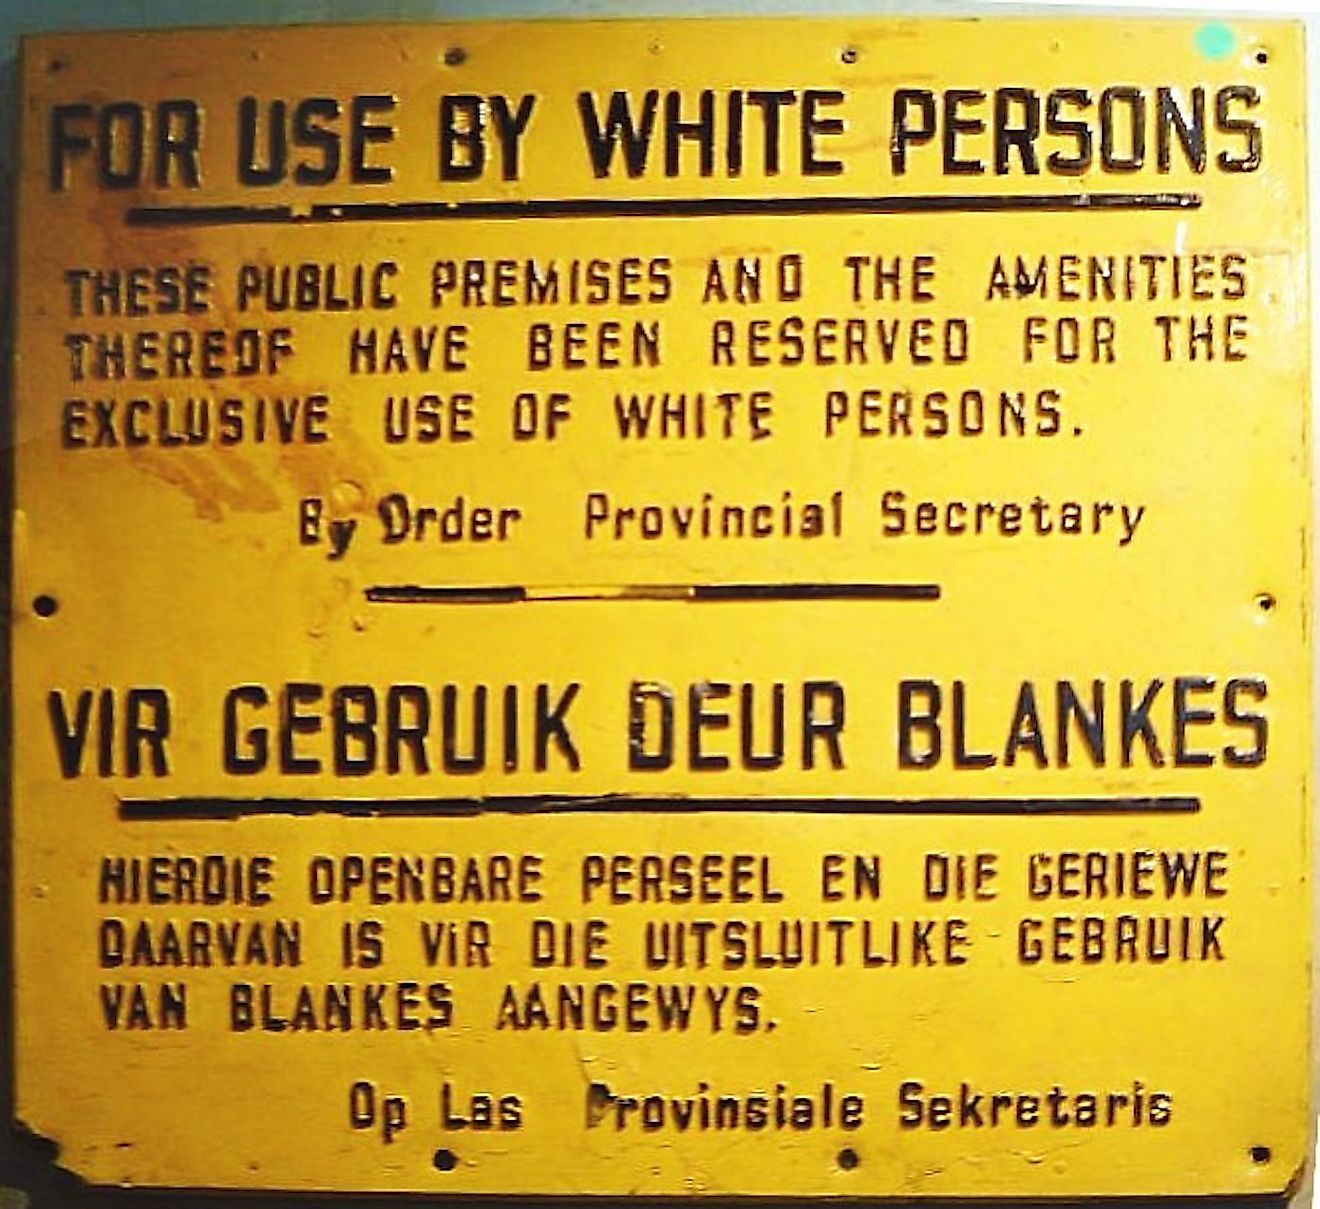 Sign from the Apartheid era in South Africa: Image credit: Dewet/Public domain